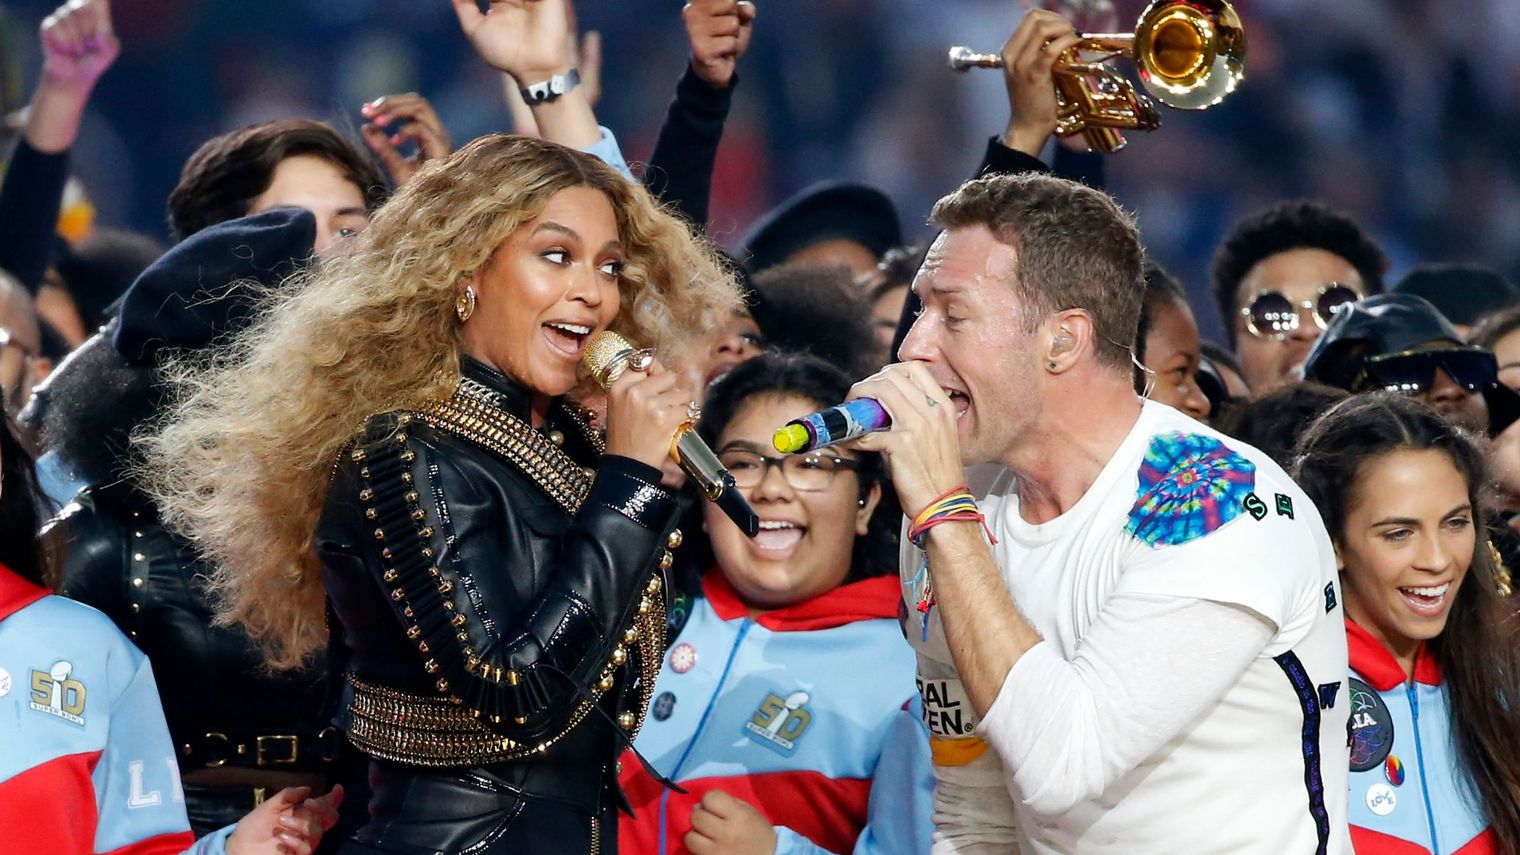 beyonce-and-chris-martin-of-coldplay-perform-during-half-time-at-the-nfl-s-super-bowl_5511779